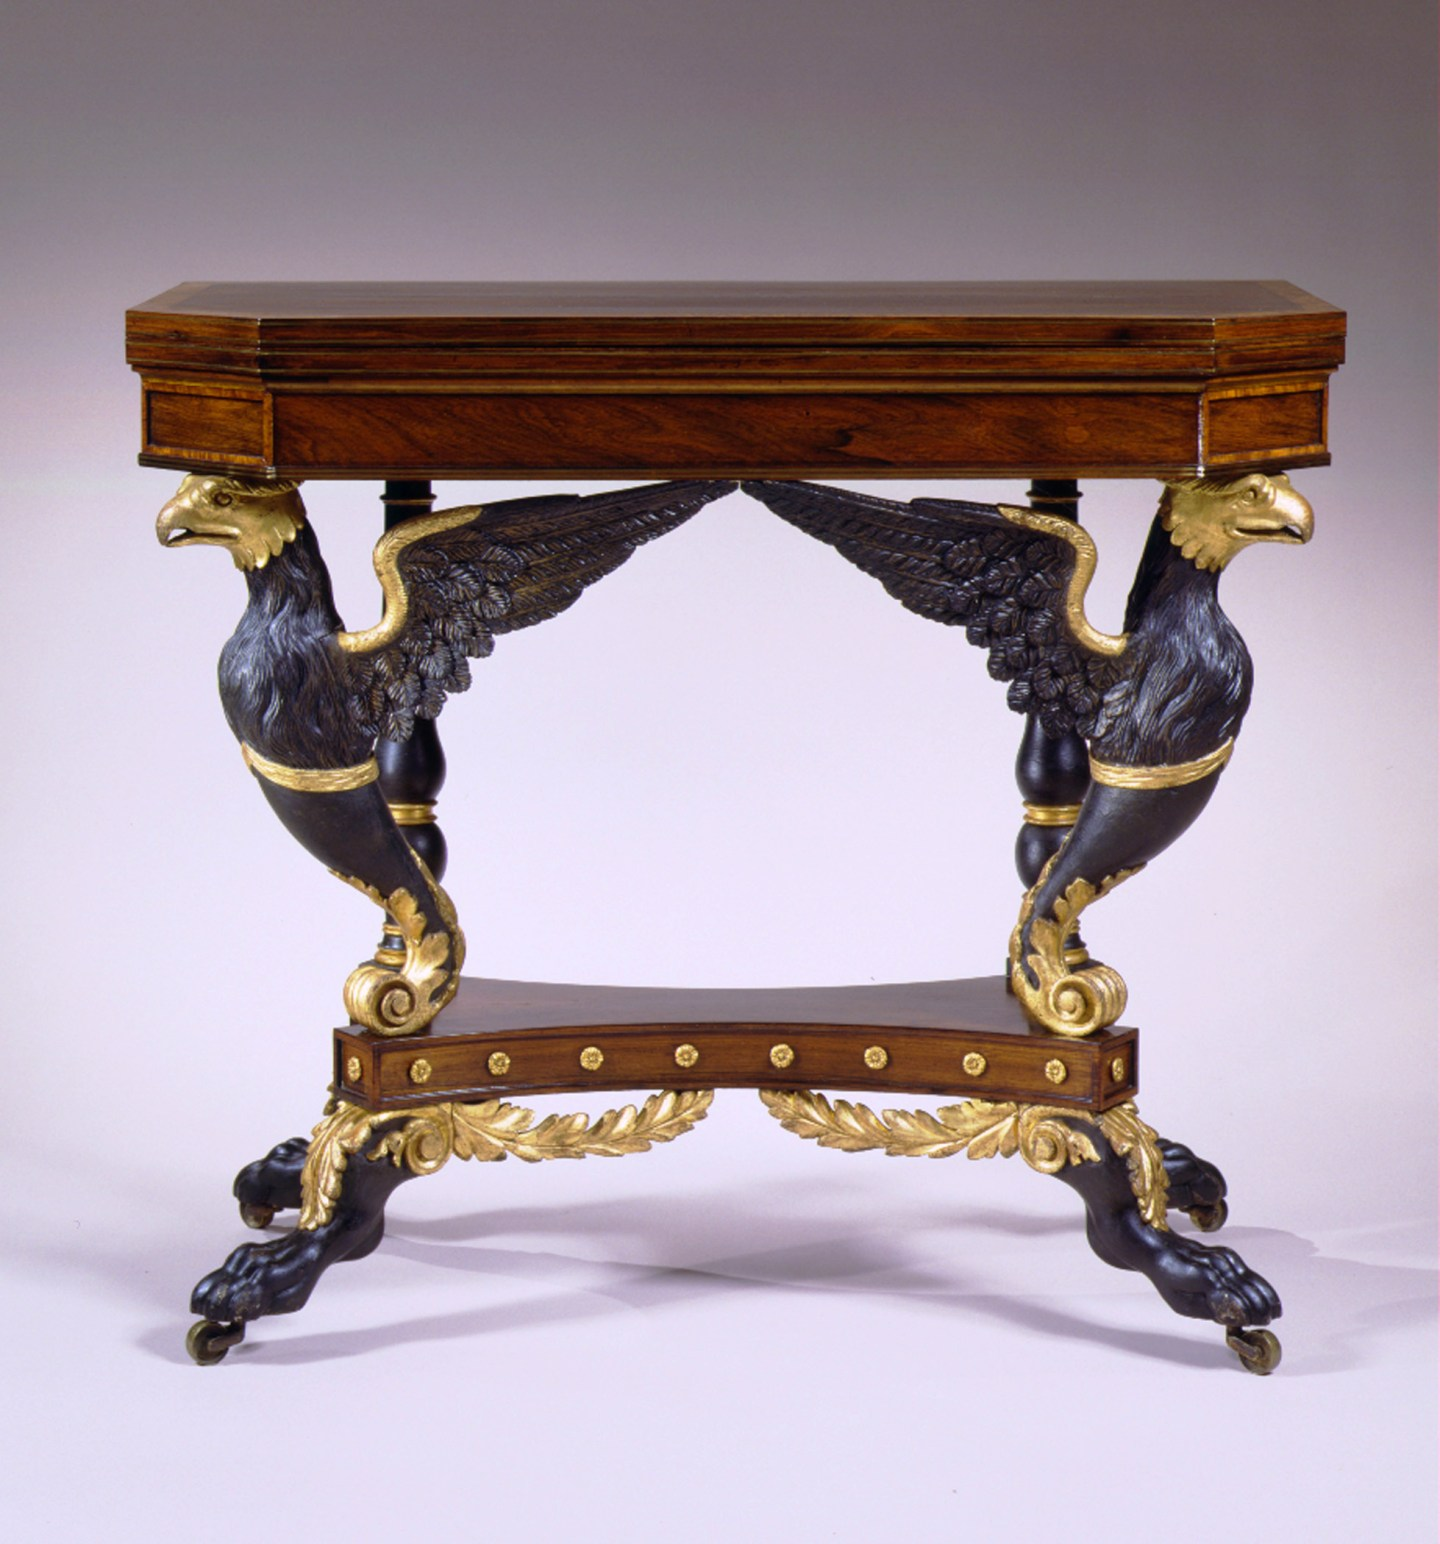 Eagle-Carved Parcel-Gilt Card Table by Duncan Phyfe